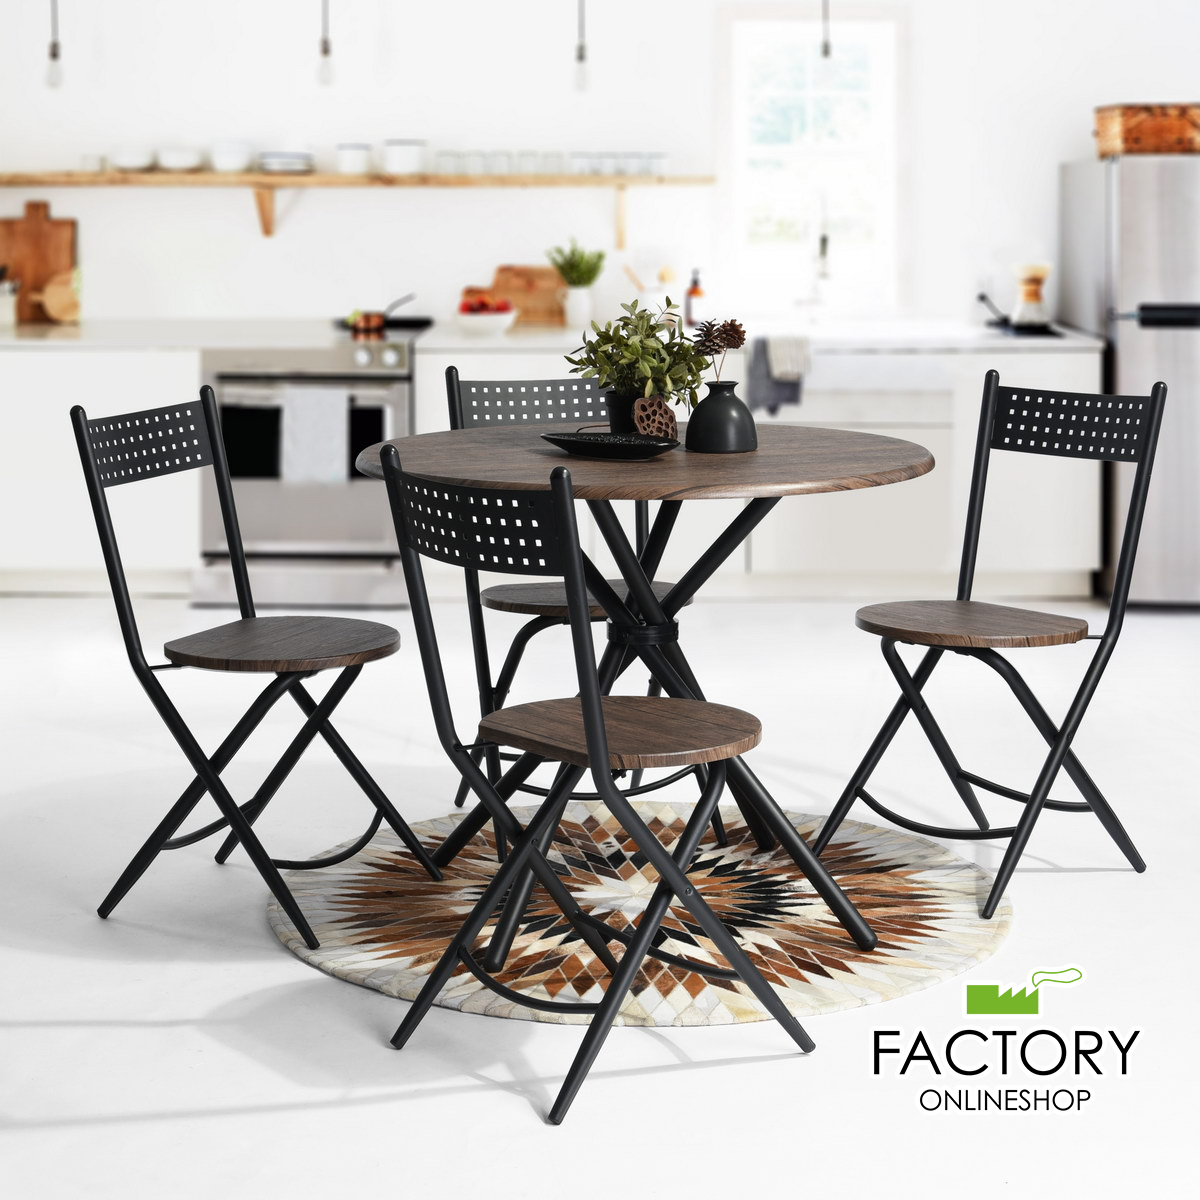 Magnificent Details About 5Pcs Round Dining Table 4 X Foldable Chairs Wooden Brown Black Modern Classic Andrewgaddart Wooden Chair Designs For Living Room Andrewgaddartcom